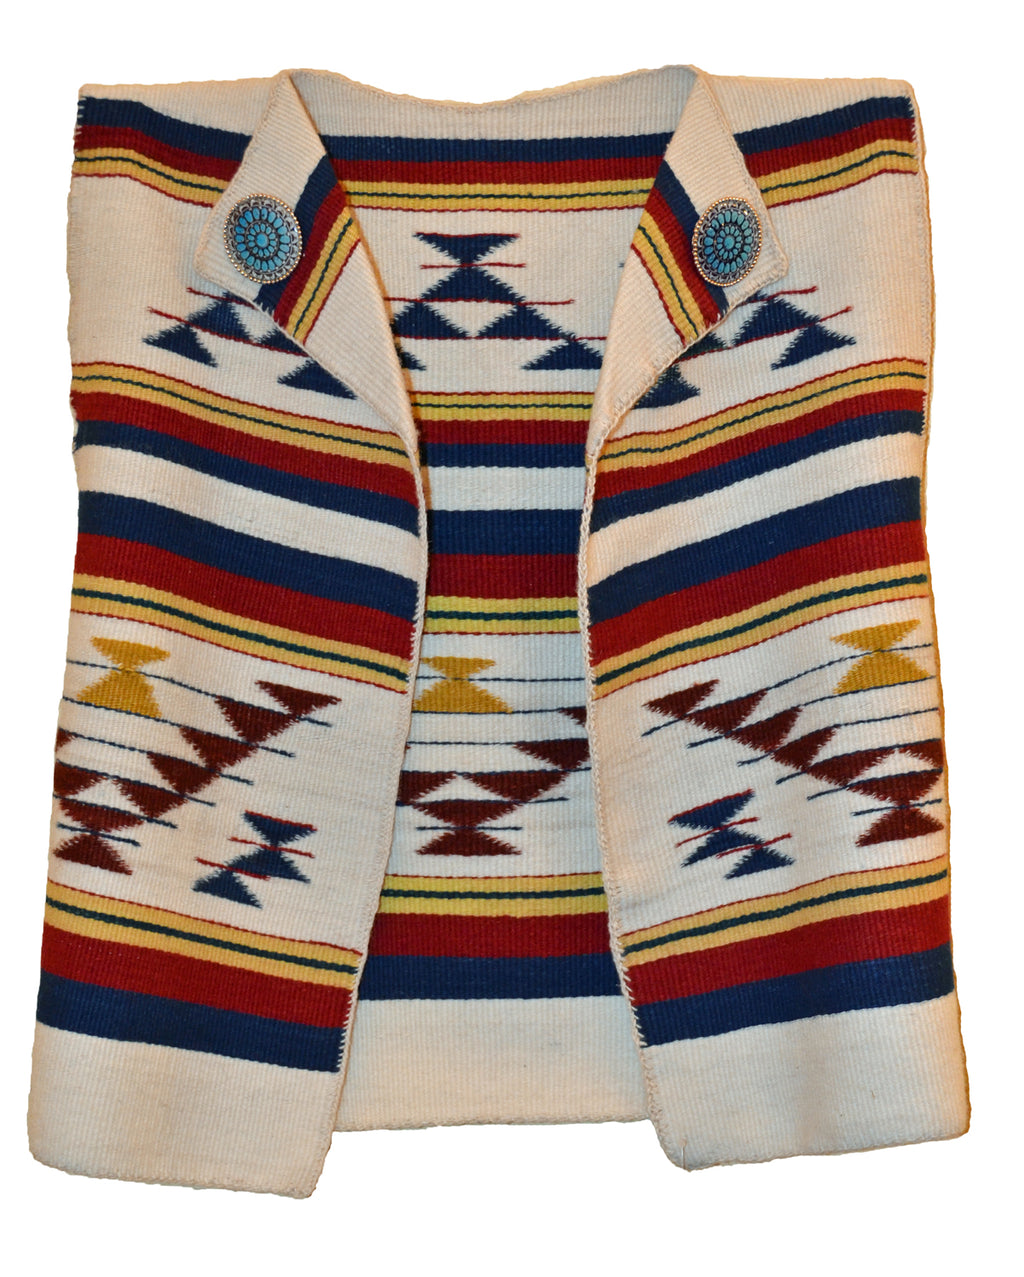 This vest is hand woven on a Navajo loom